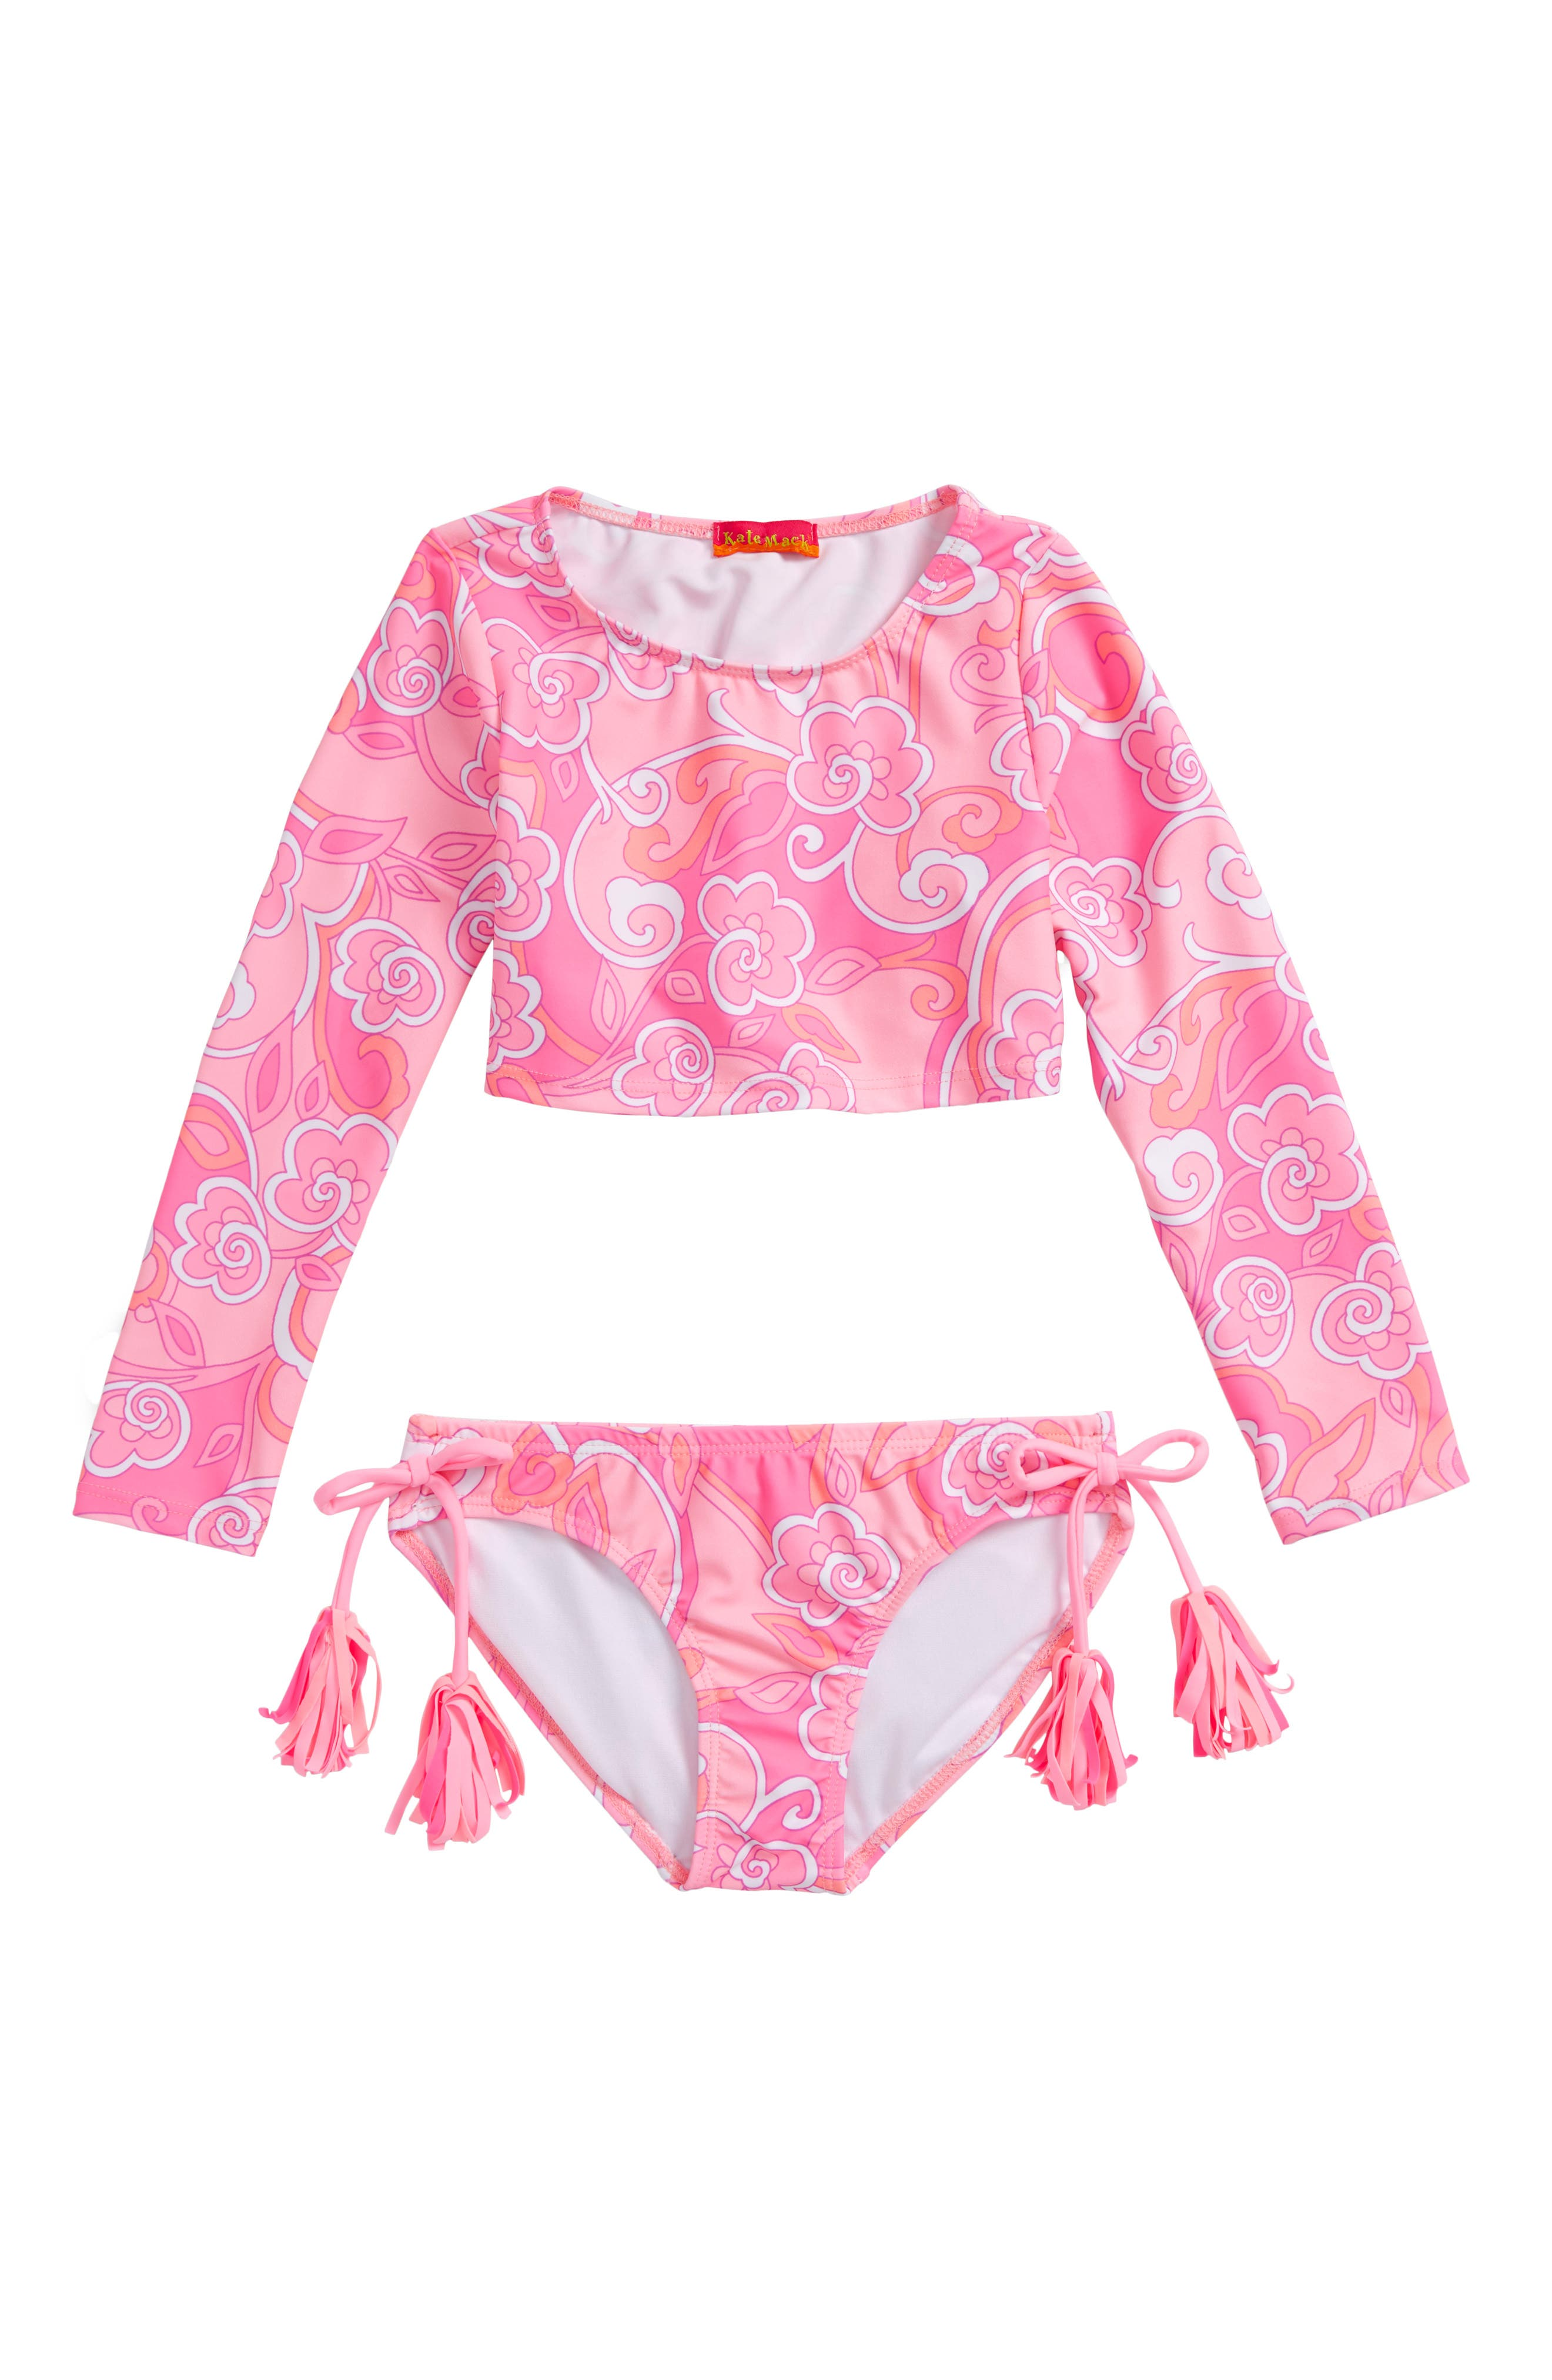 Two-Piece Rashguard Swimsuit,                         Main,                         color, 650